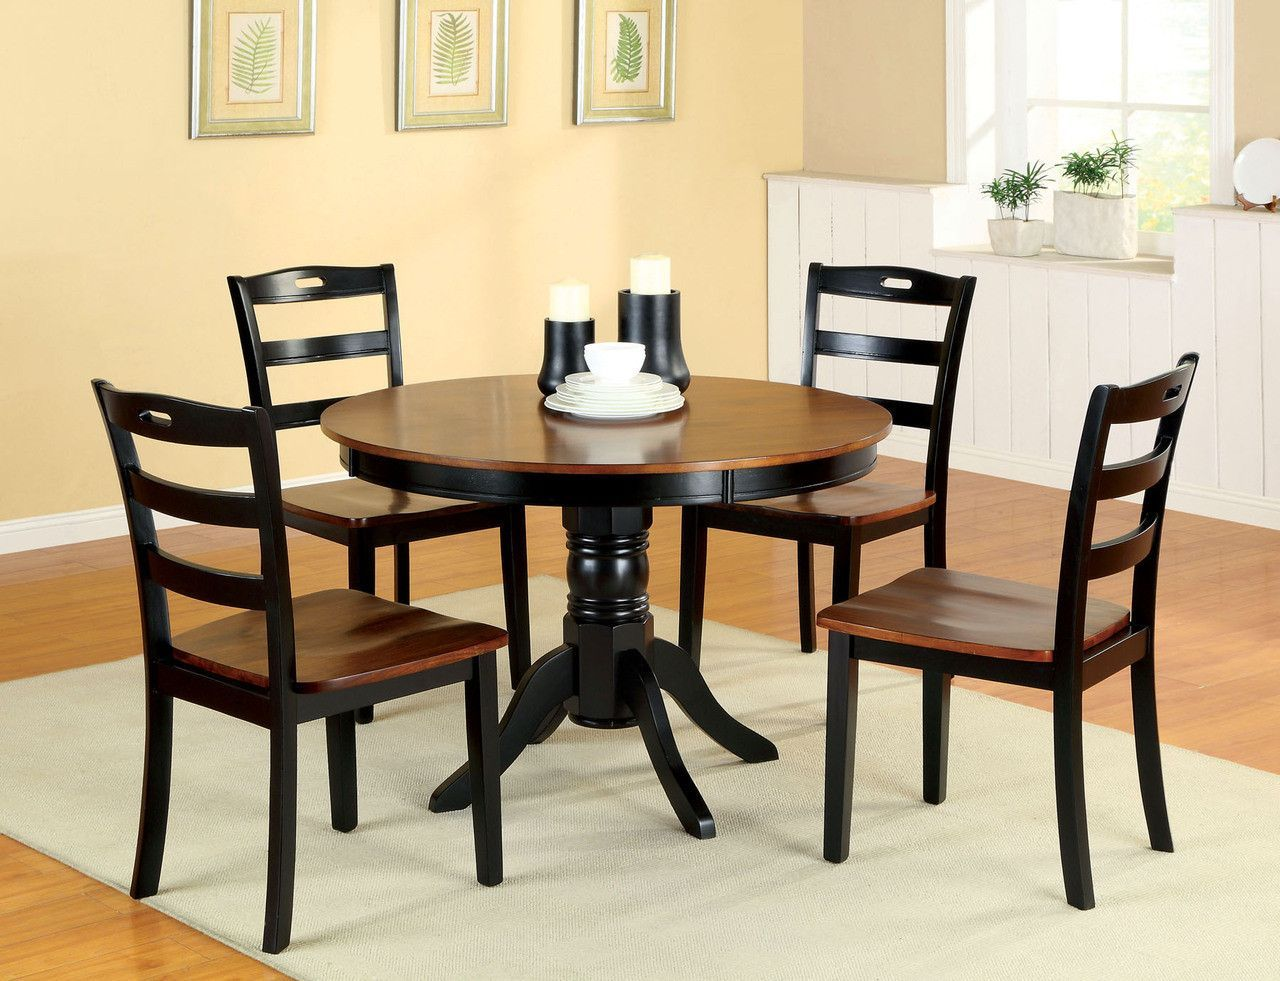 Johnstown dining table with 4 chairs cm3027rtcreate a warm for Traditional round dining table sets